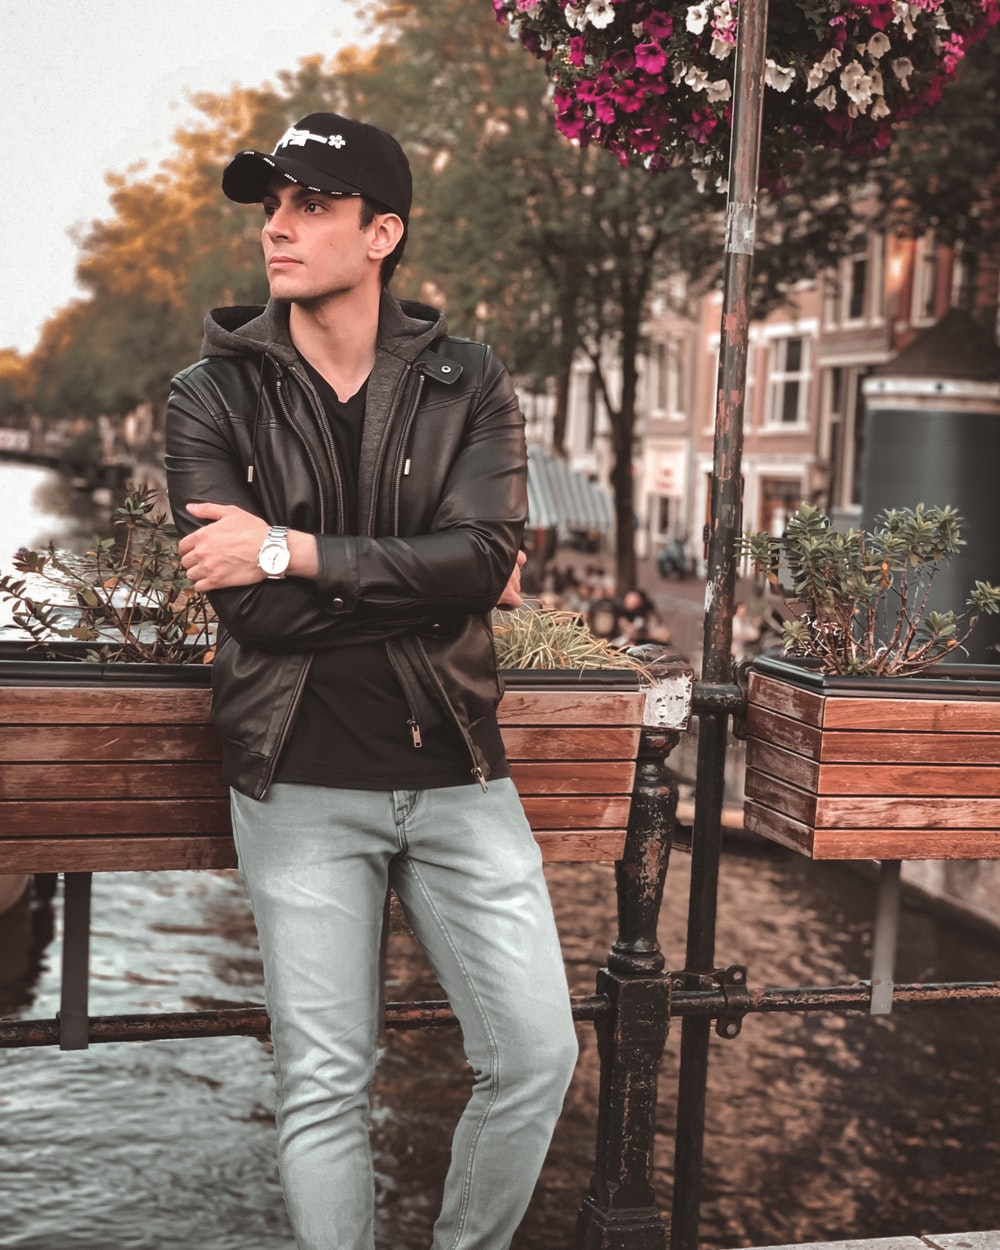 man in black leather jacket and gray pants standing near brown wooden bench during daytime